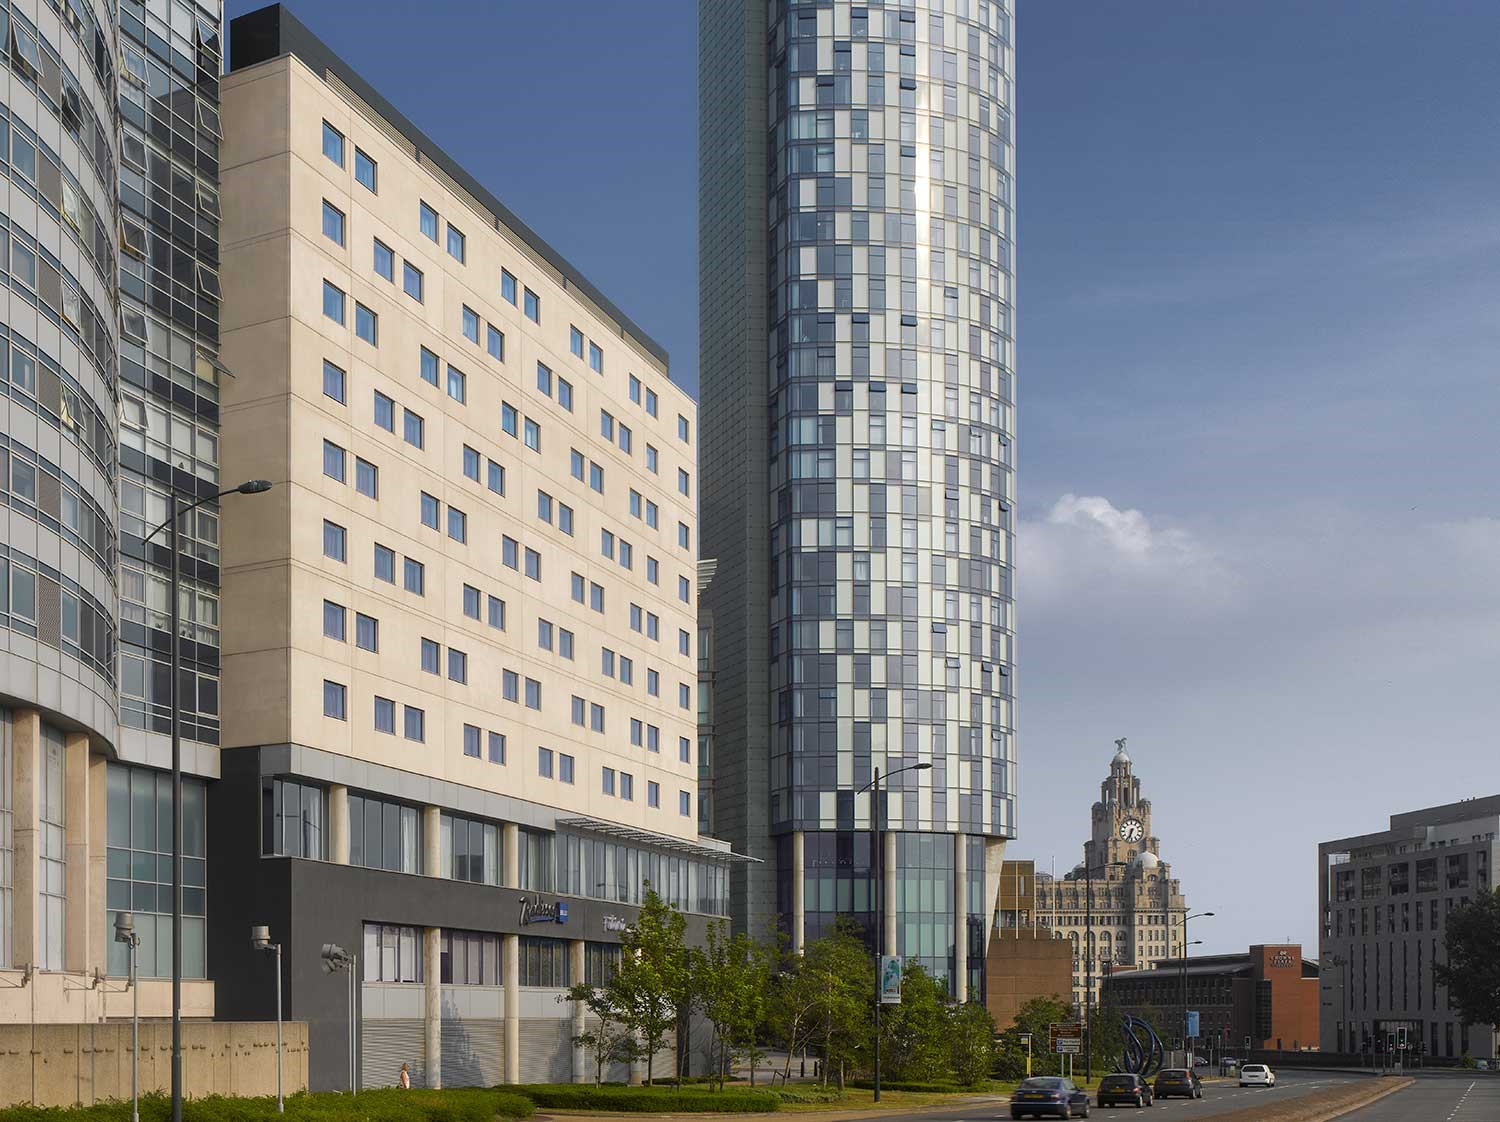 Picture of Radisson Blu Hotel Liverpool